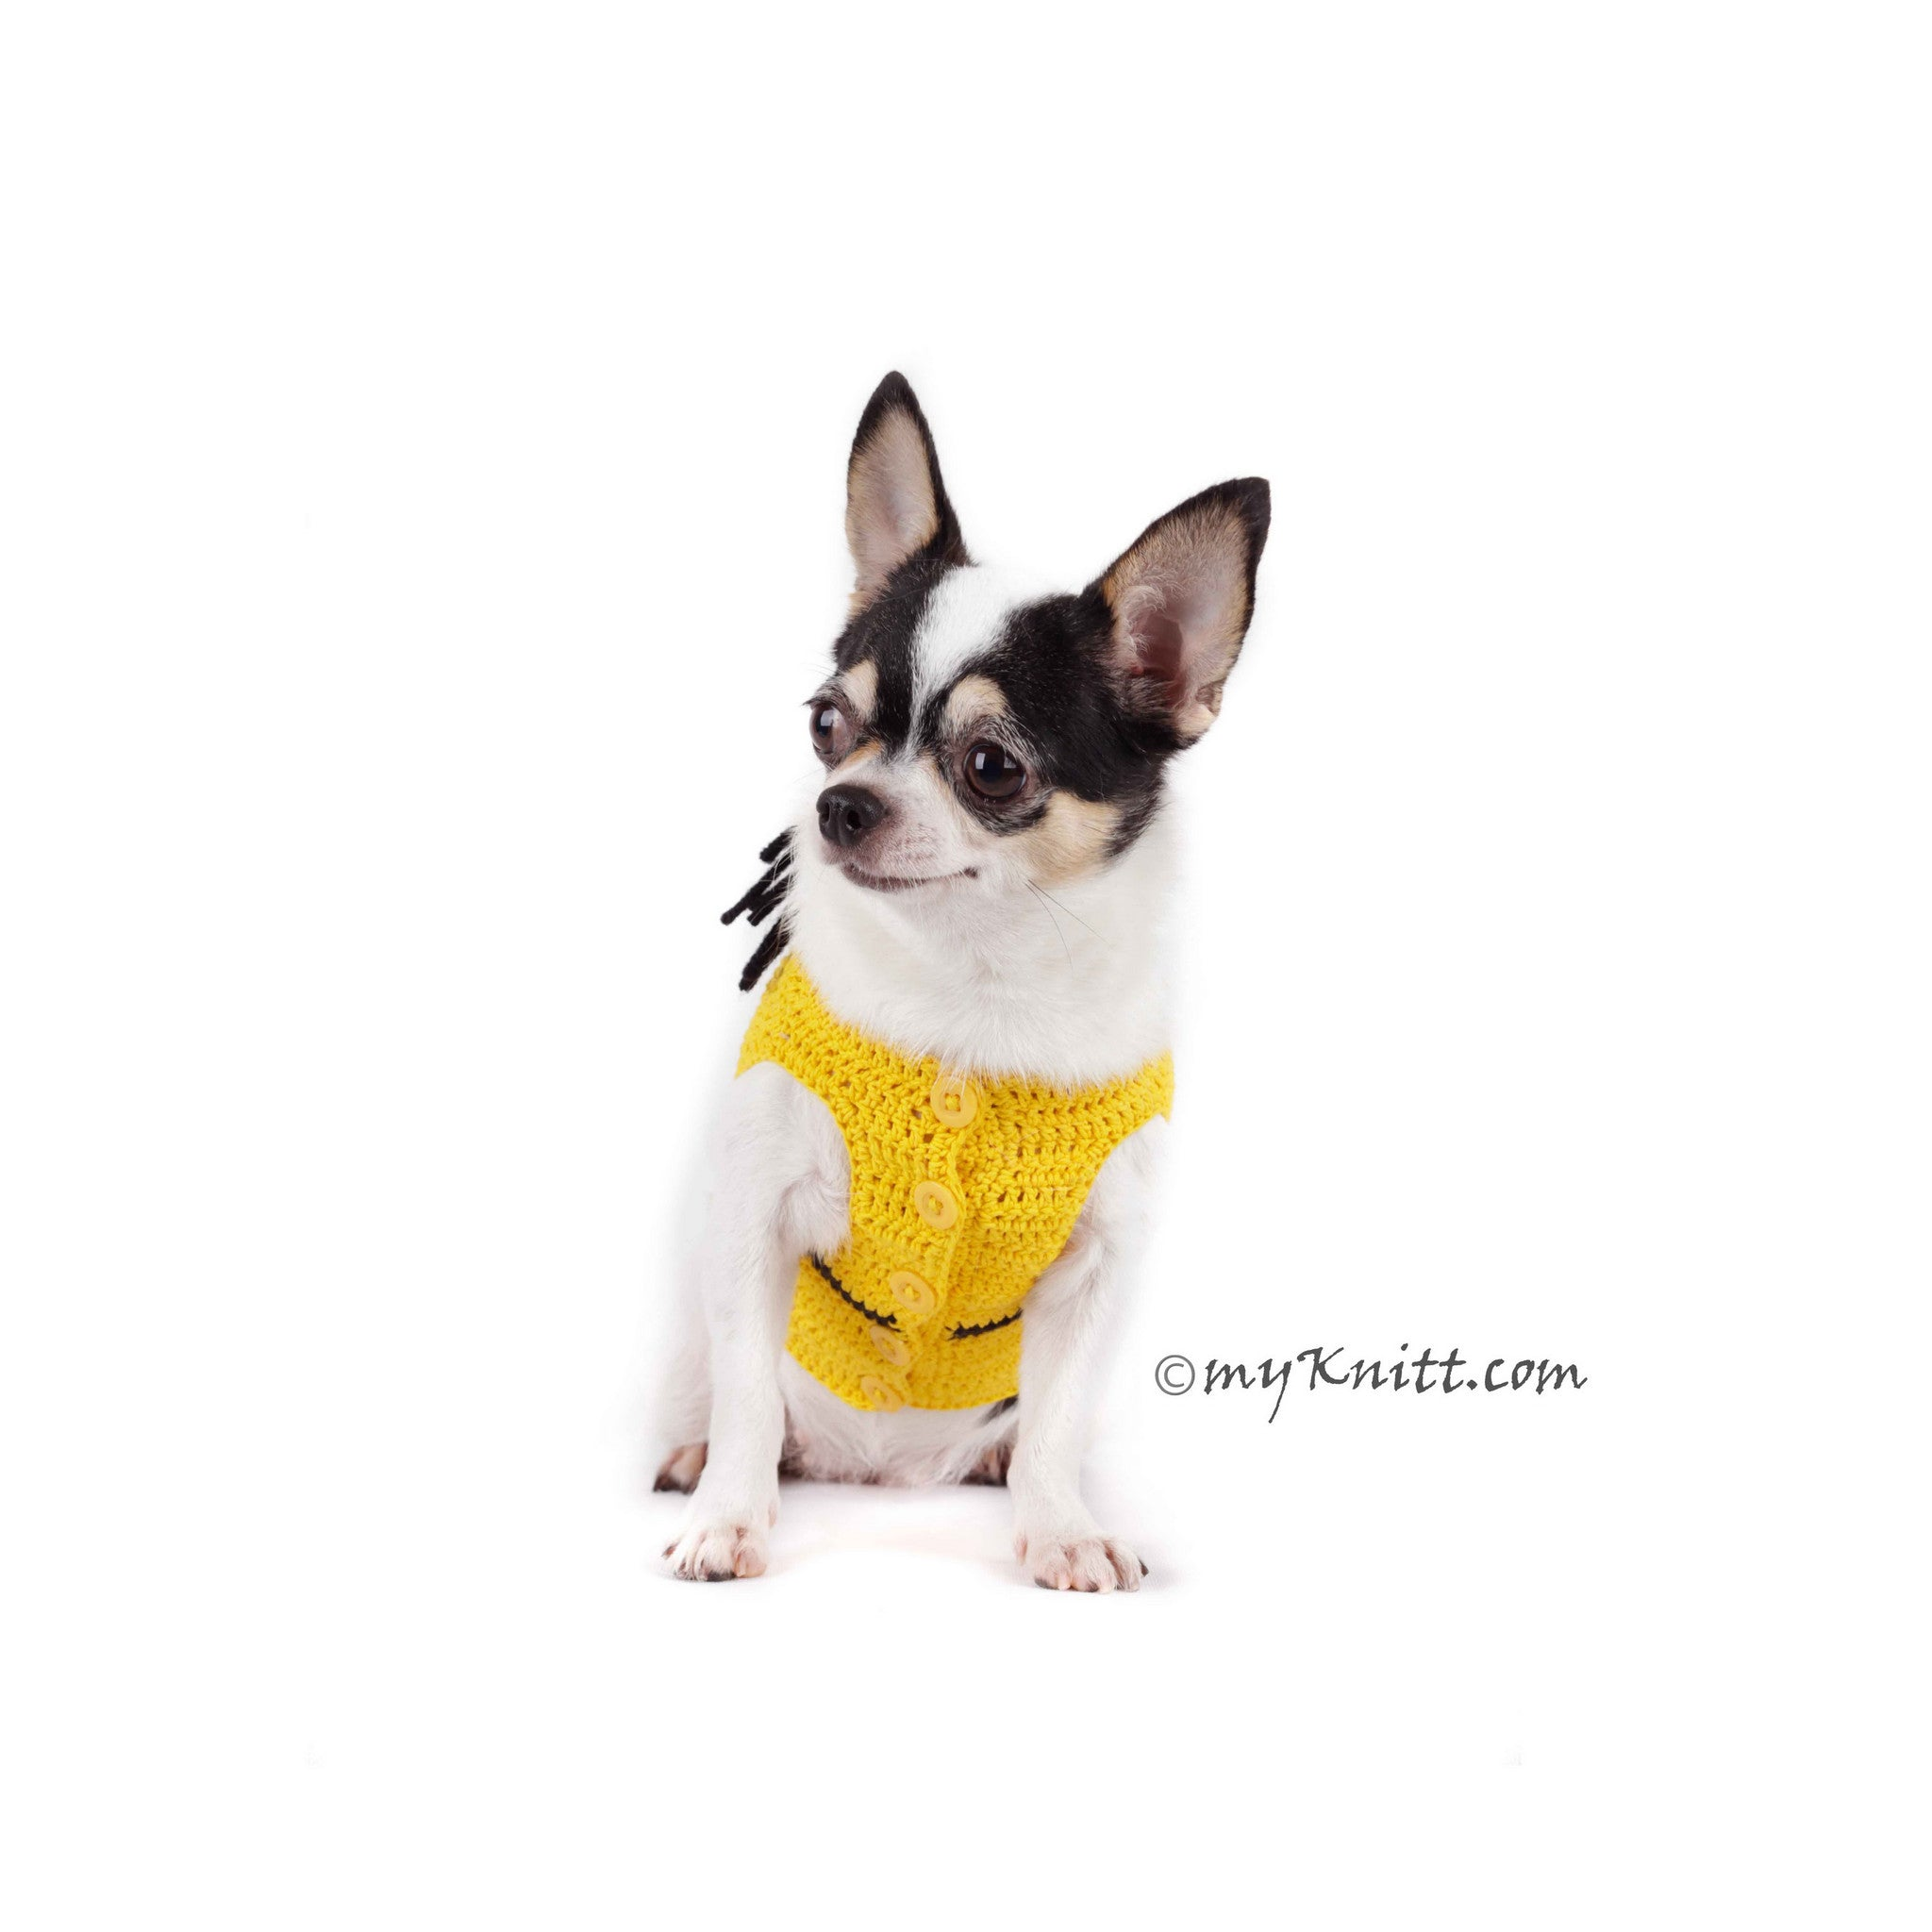 Pink Minion Dog Costume Cute Girl Despicable Me Pet Clothes for Halloween DK783  sc 1 st  Myknitt.com & Pink Minion Dog Costume Cute Girl Despicable Me Pet Clothes for ...